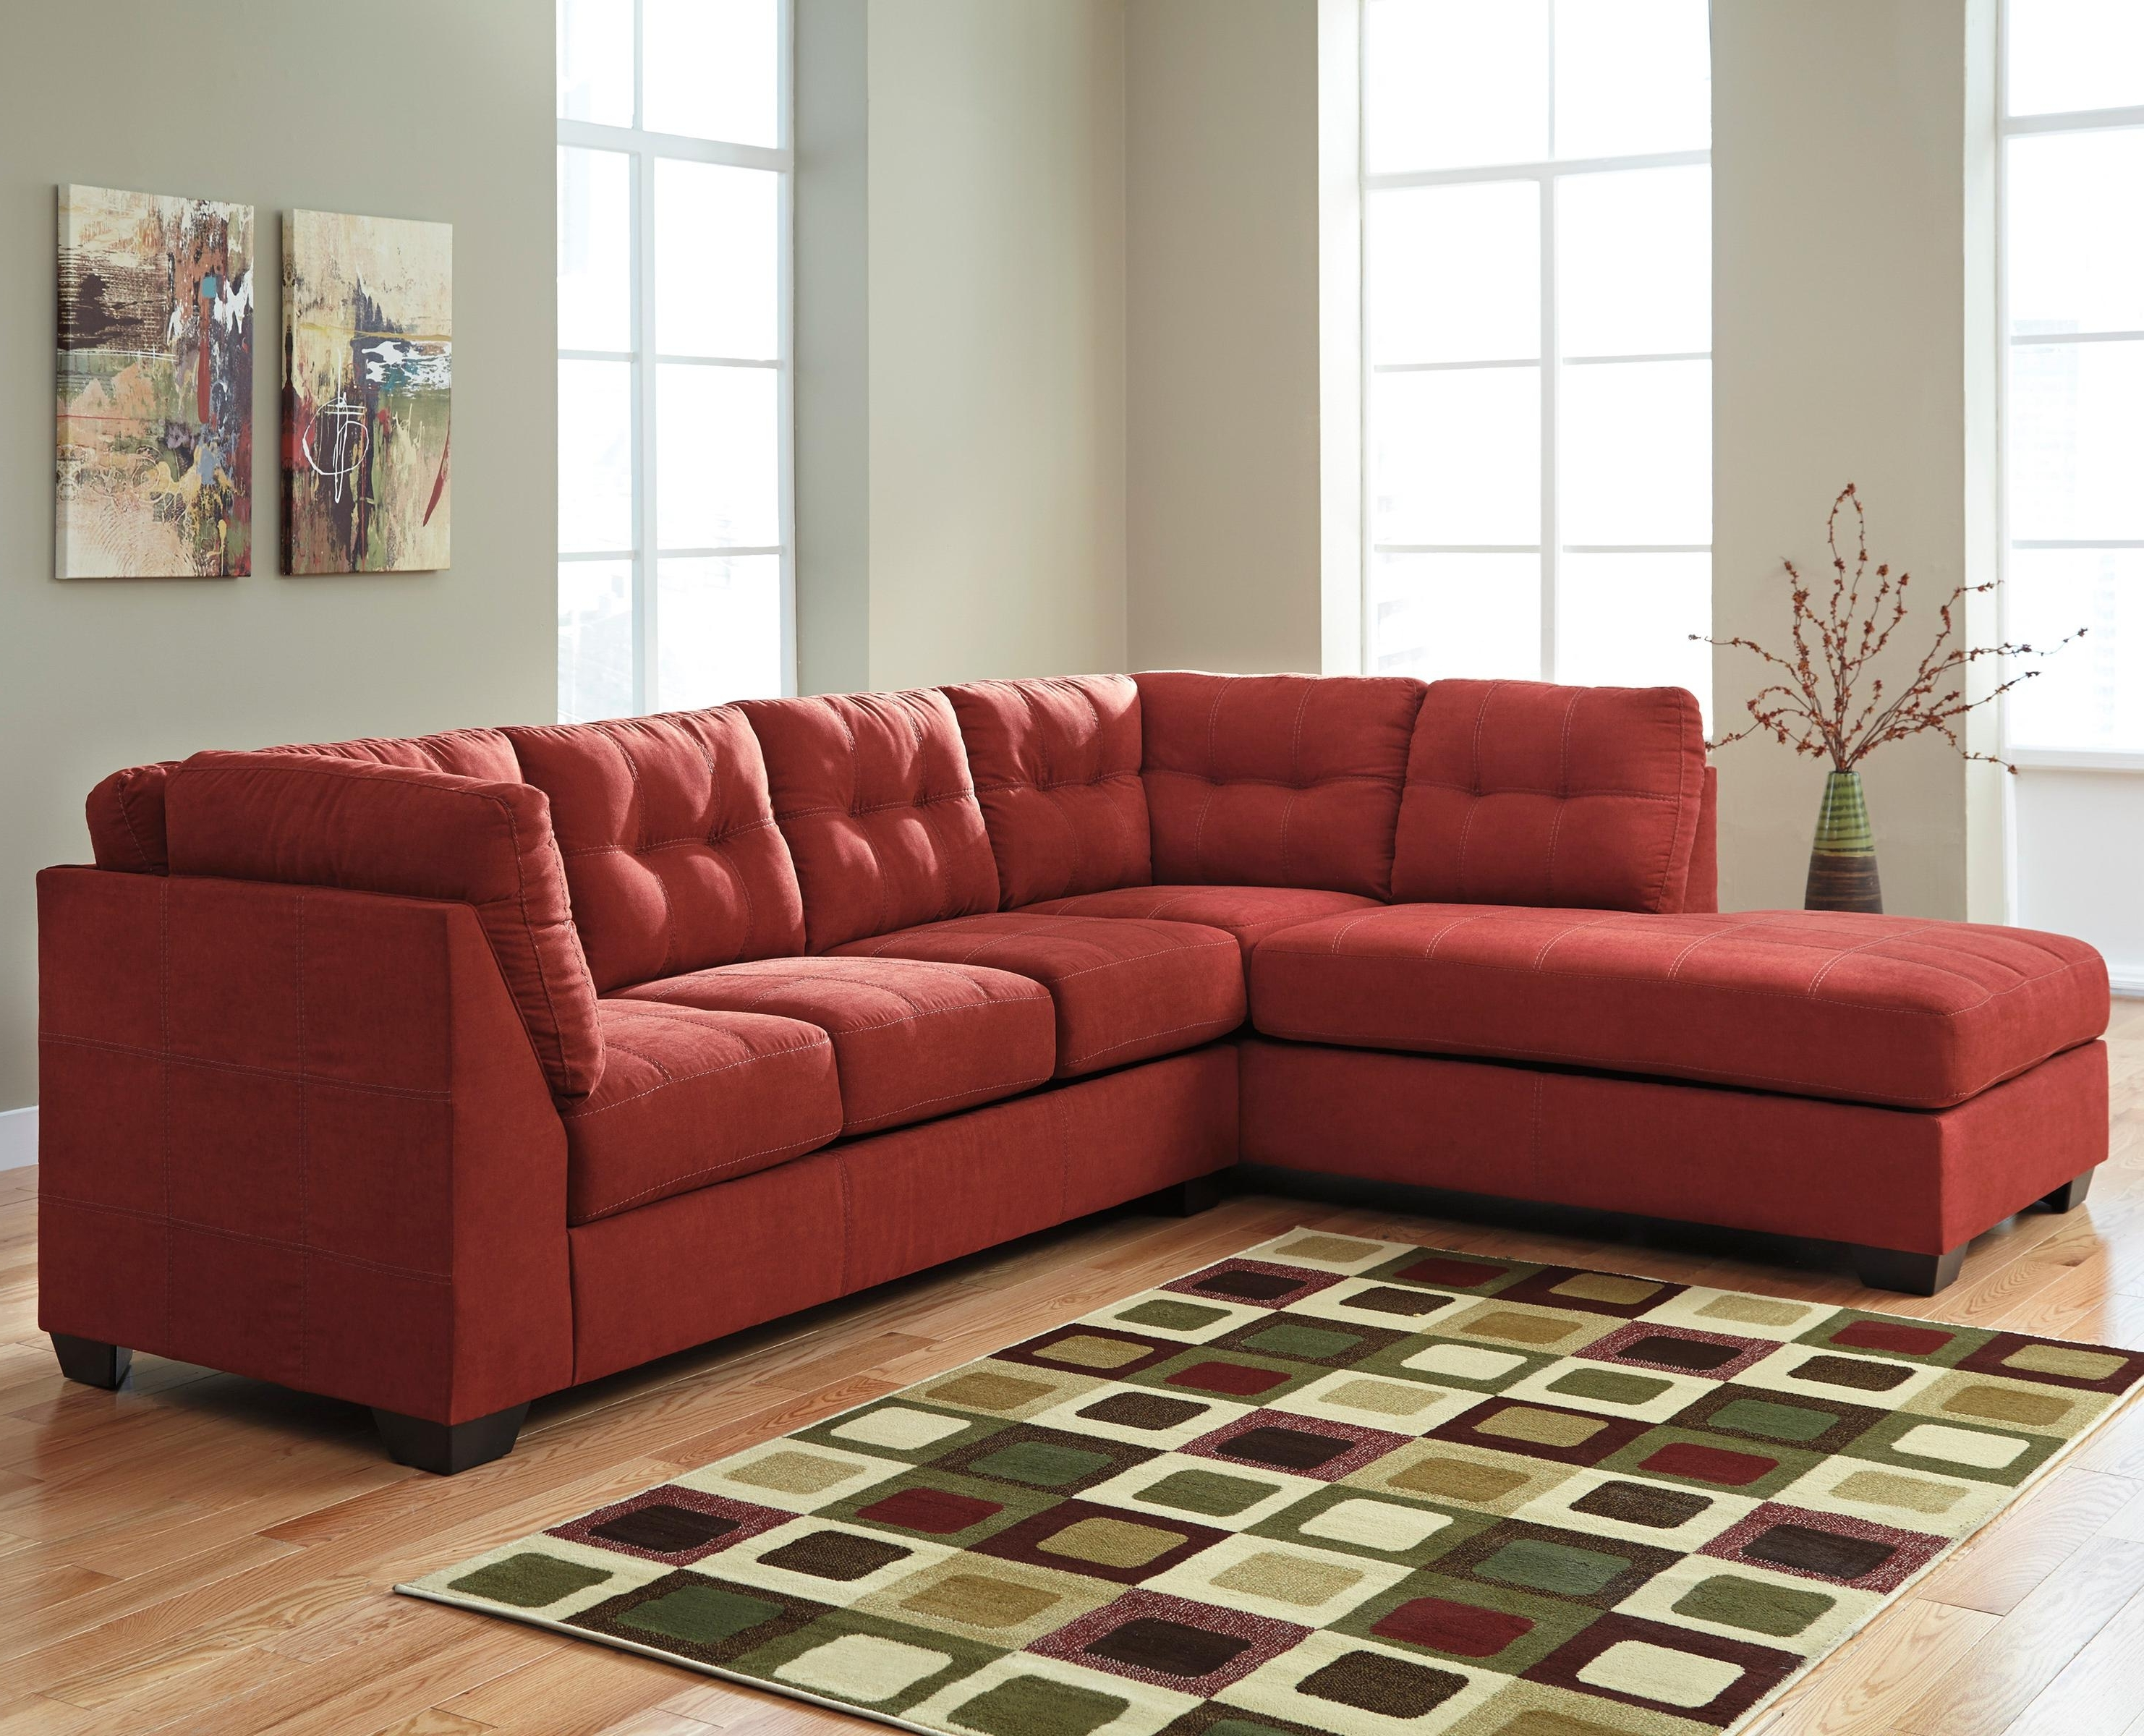 Red Sleeper Sofas In Most Up To Date 2 Piece Sectional W/ Sleeper Sofa & Left Chaisebenchcraft (View 13 of 20)